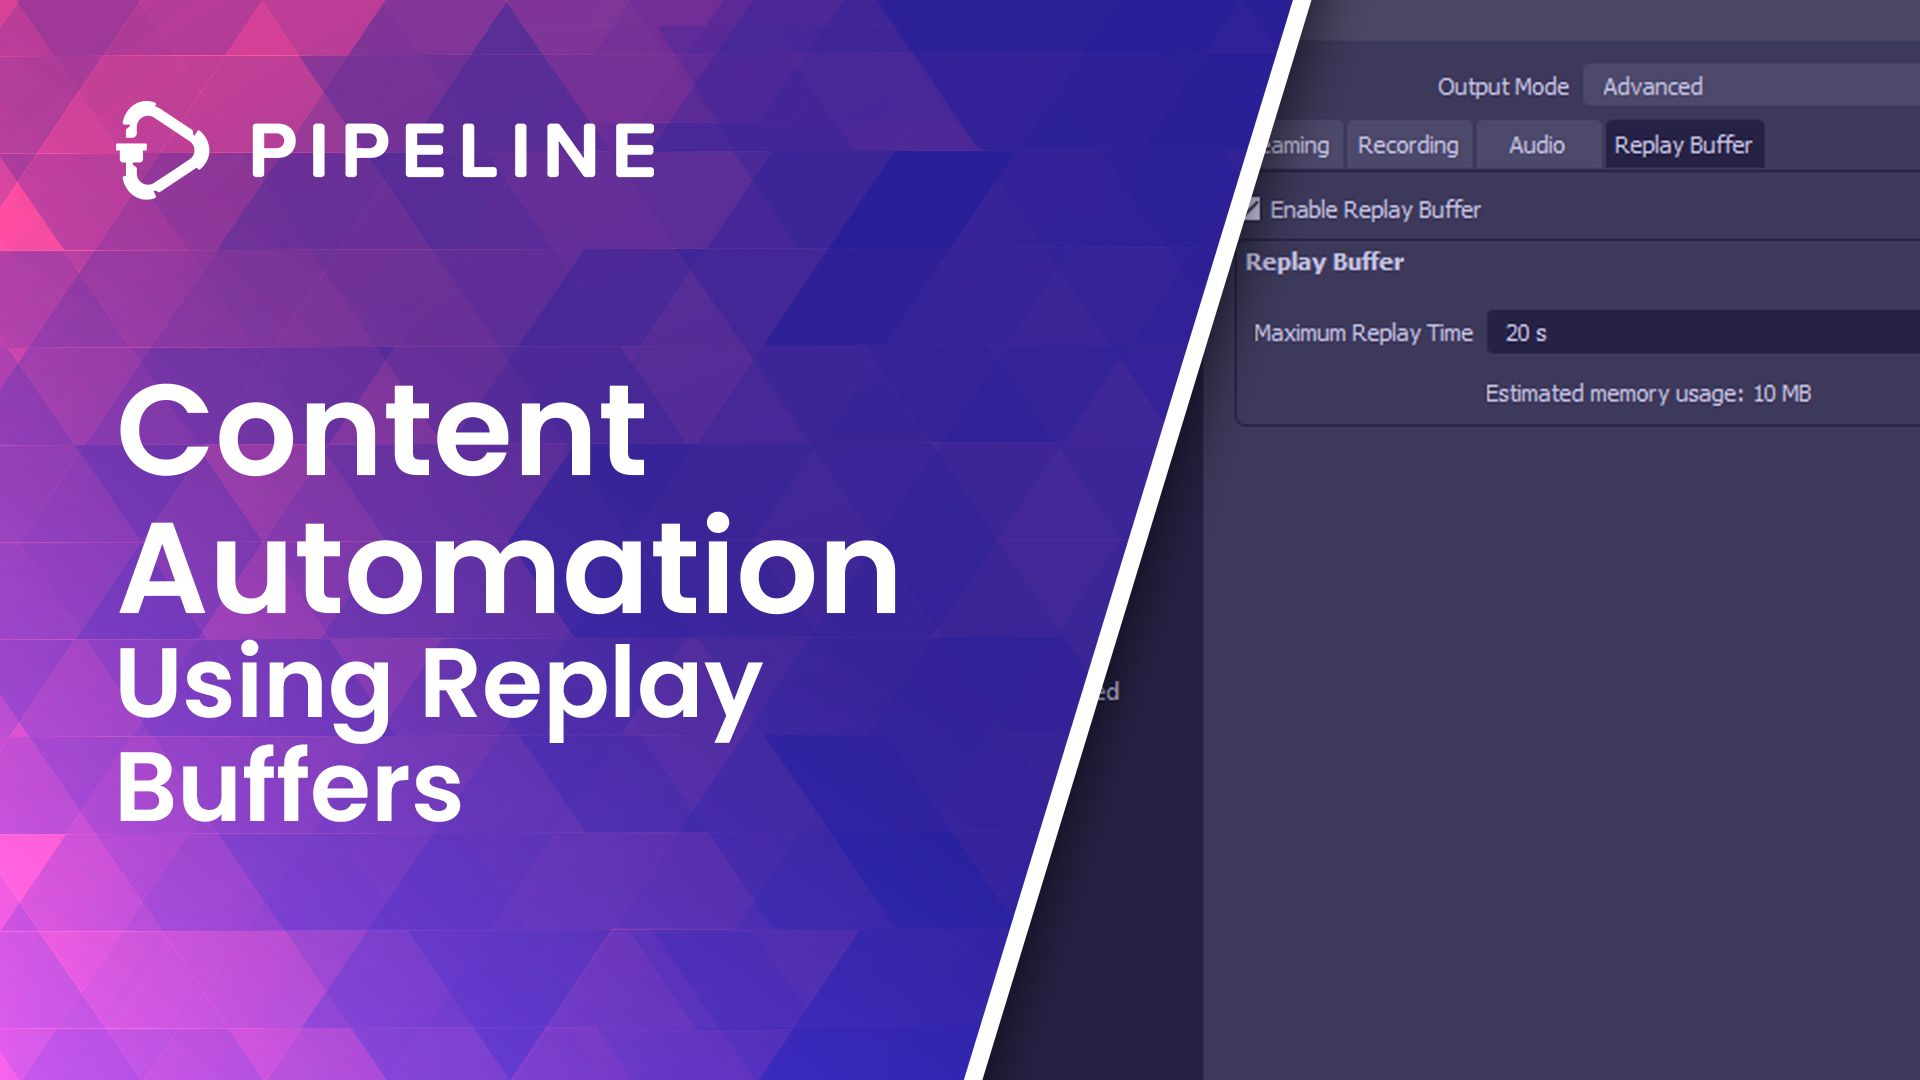 Content Automation With Replay Buffers